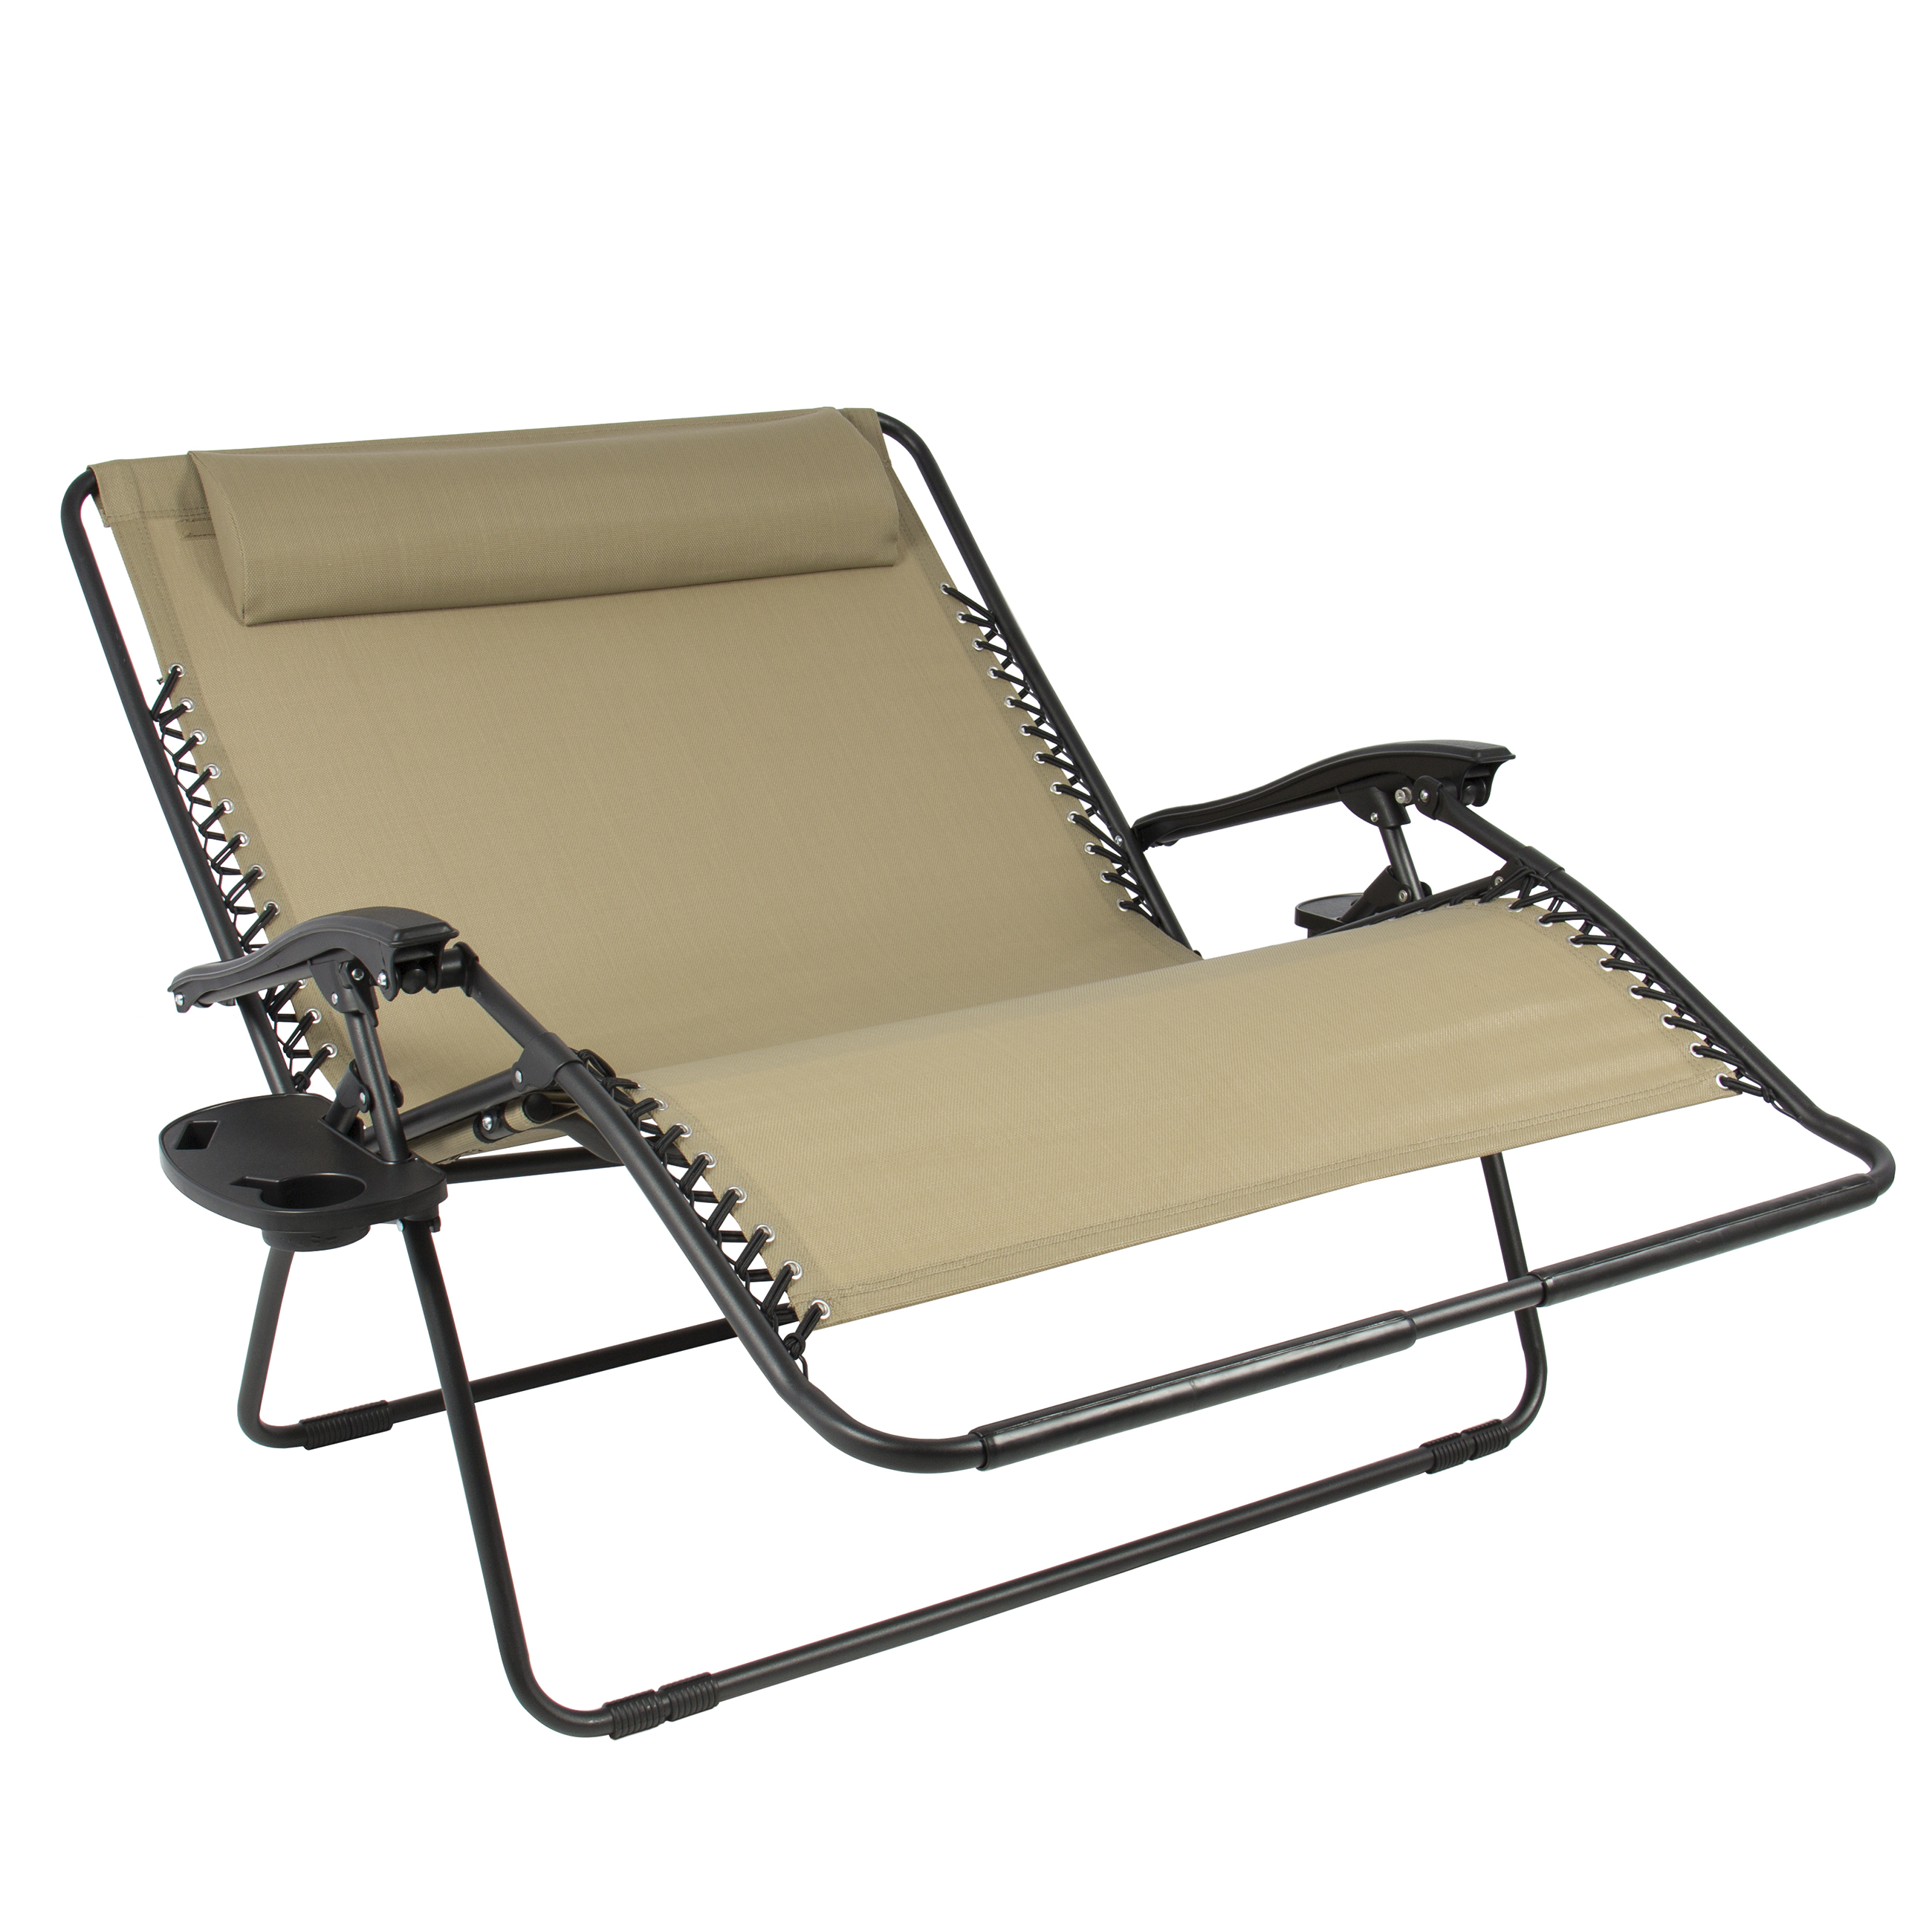 Bcp Huge Folding 2 Person Gravity Chair Double Wide